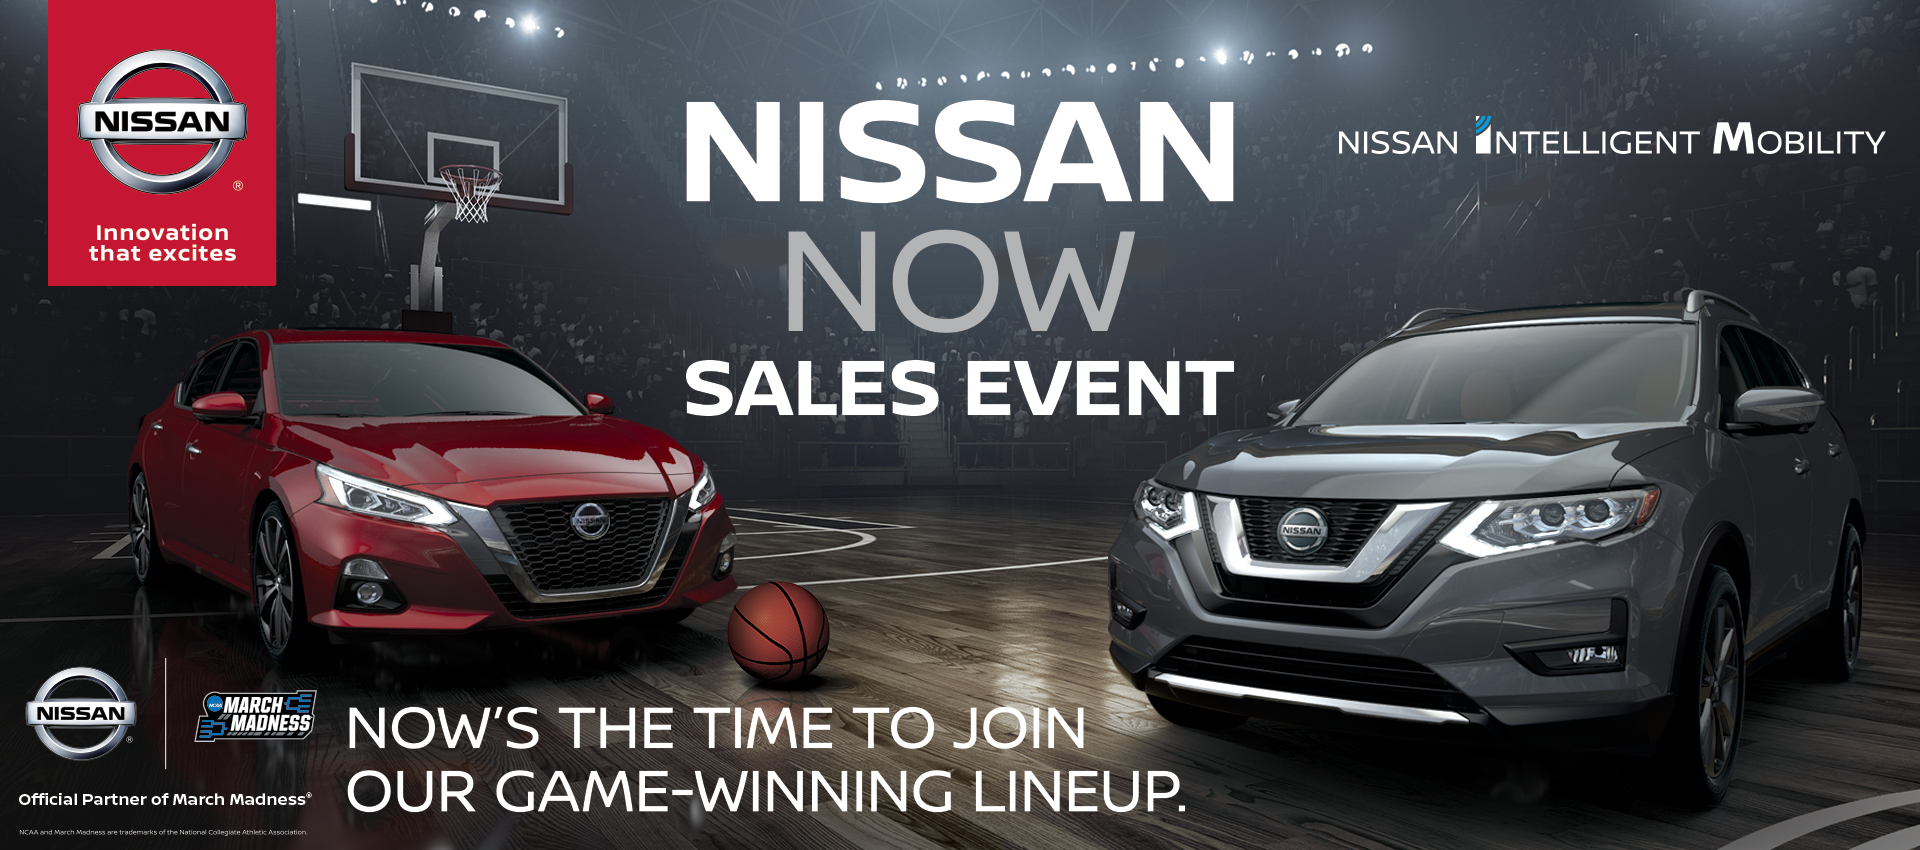 Mossy Nissan - NOW Nissan Sales Event HP